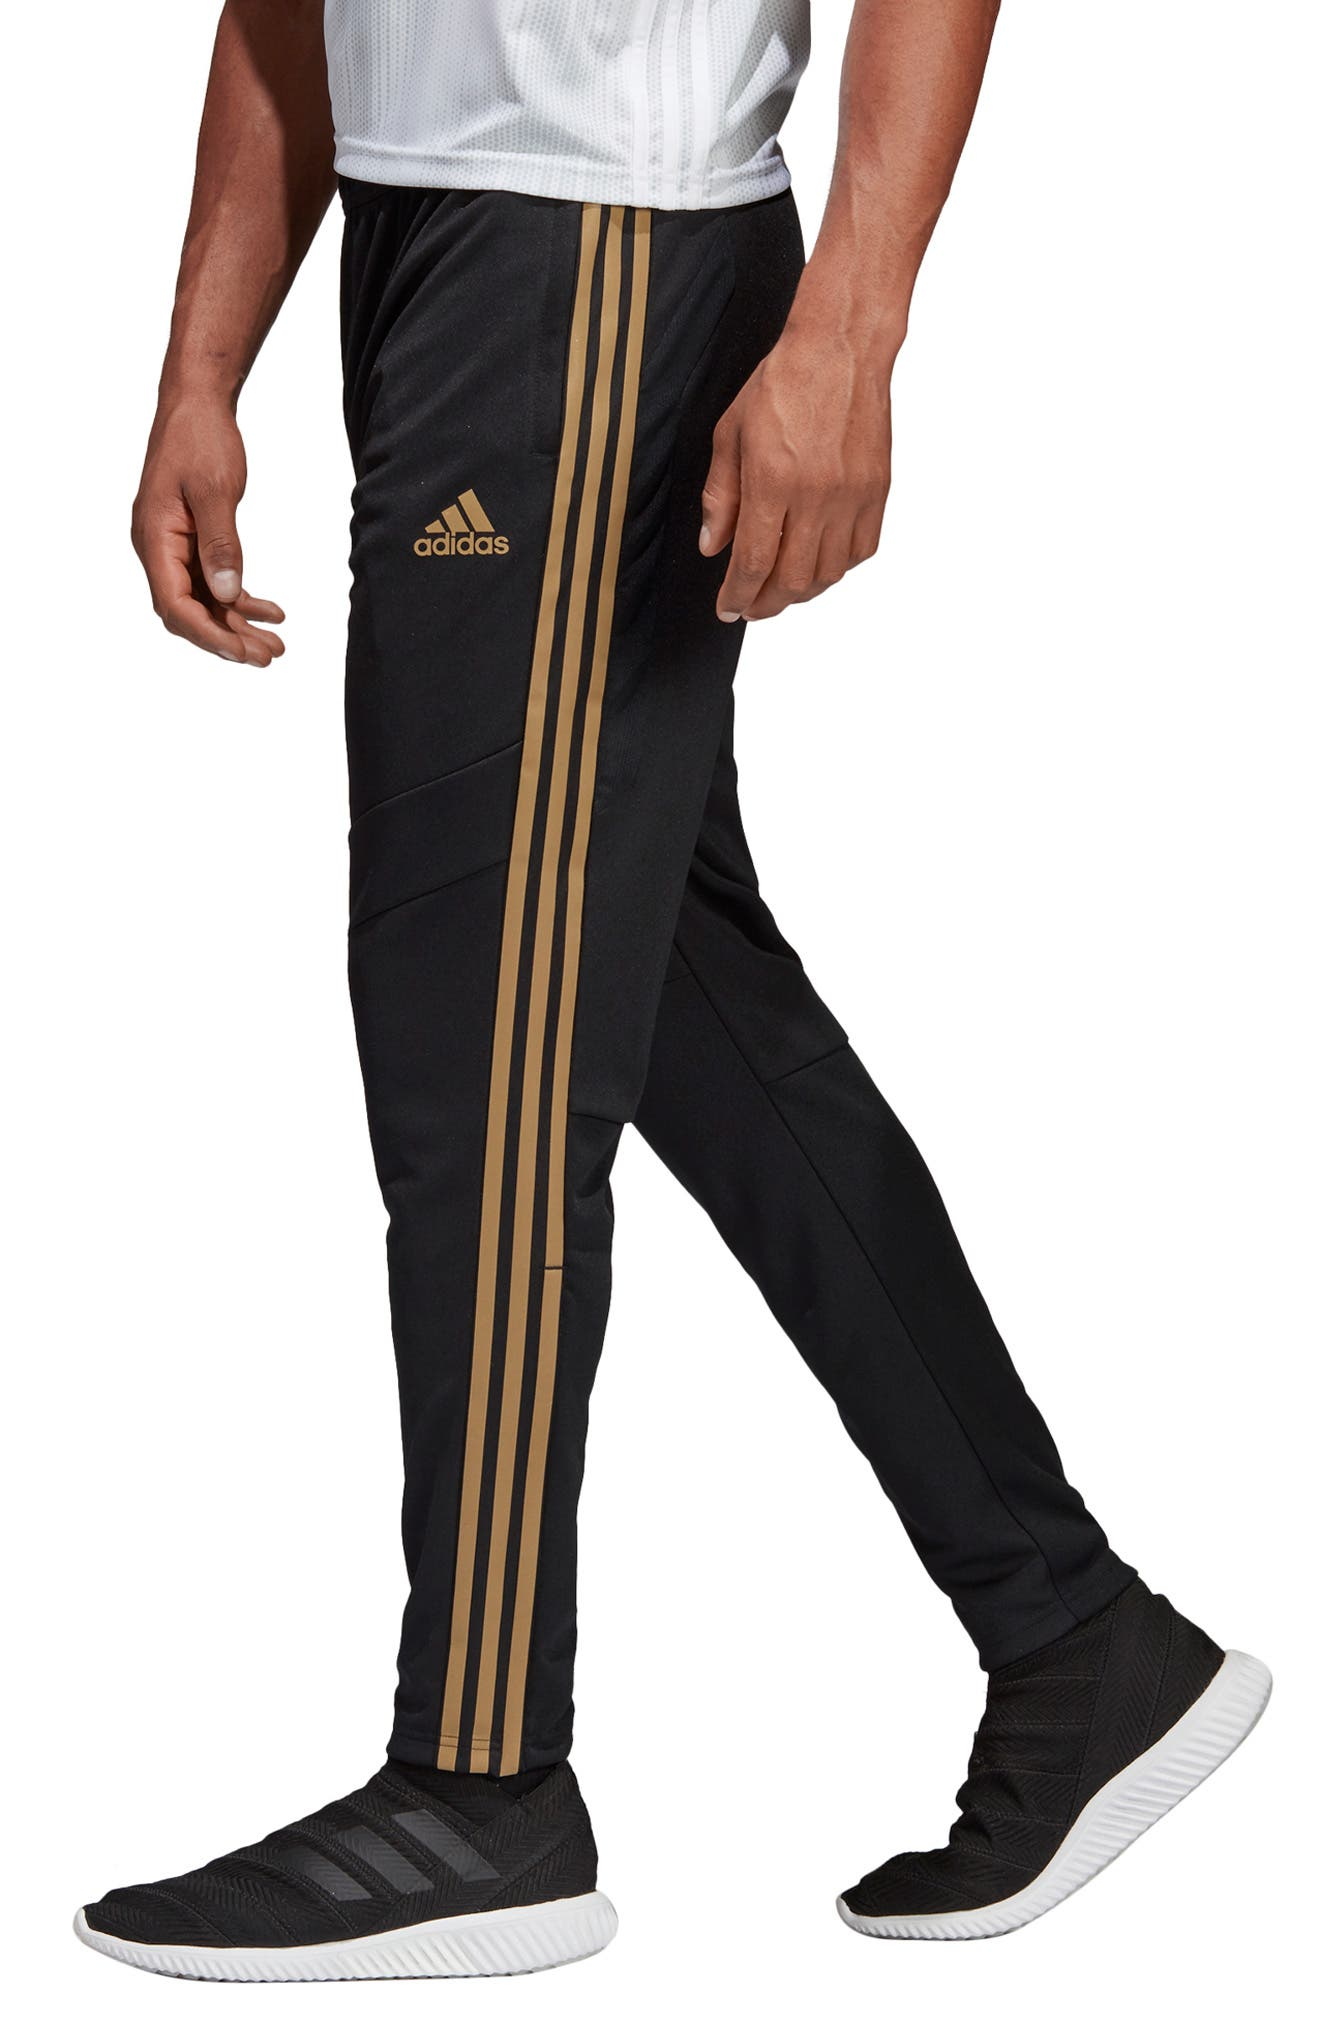 ADIDAS, Tiro 19 Training Pants, Alternate thumbnail 4, color, BLACK/ GOLD